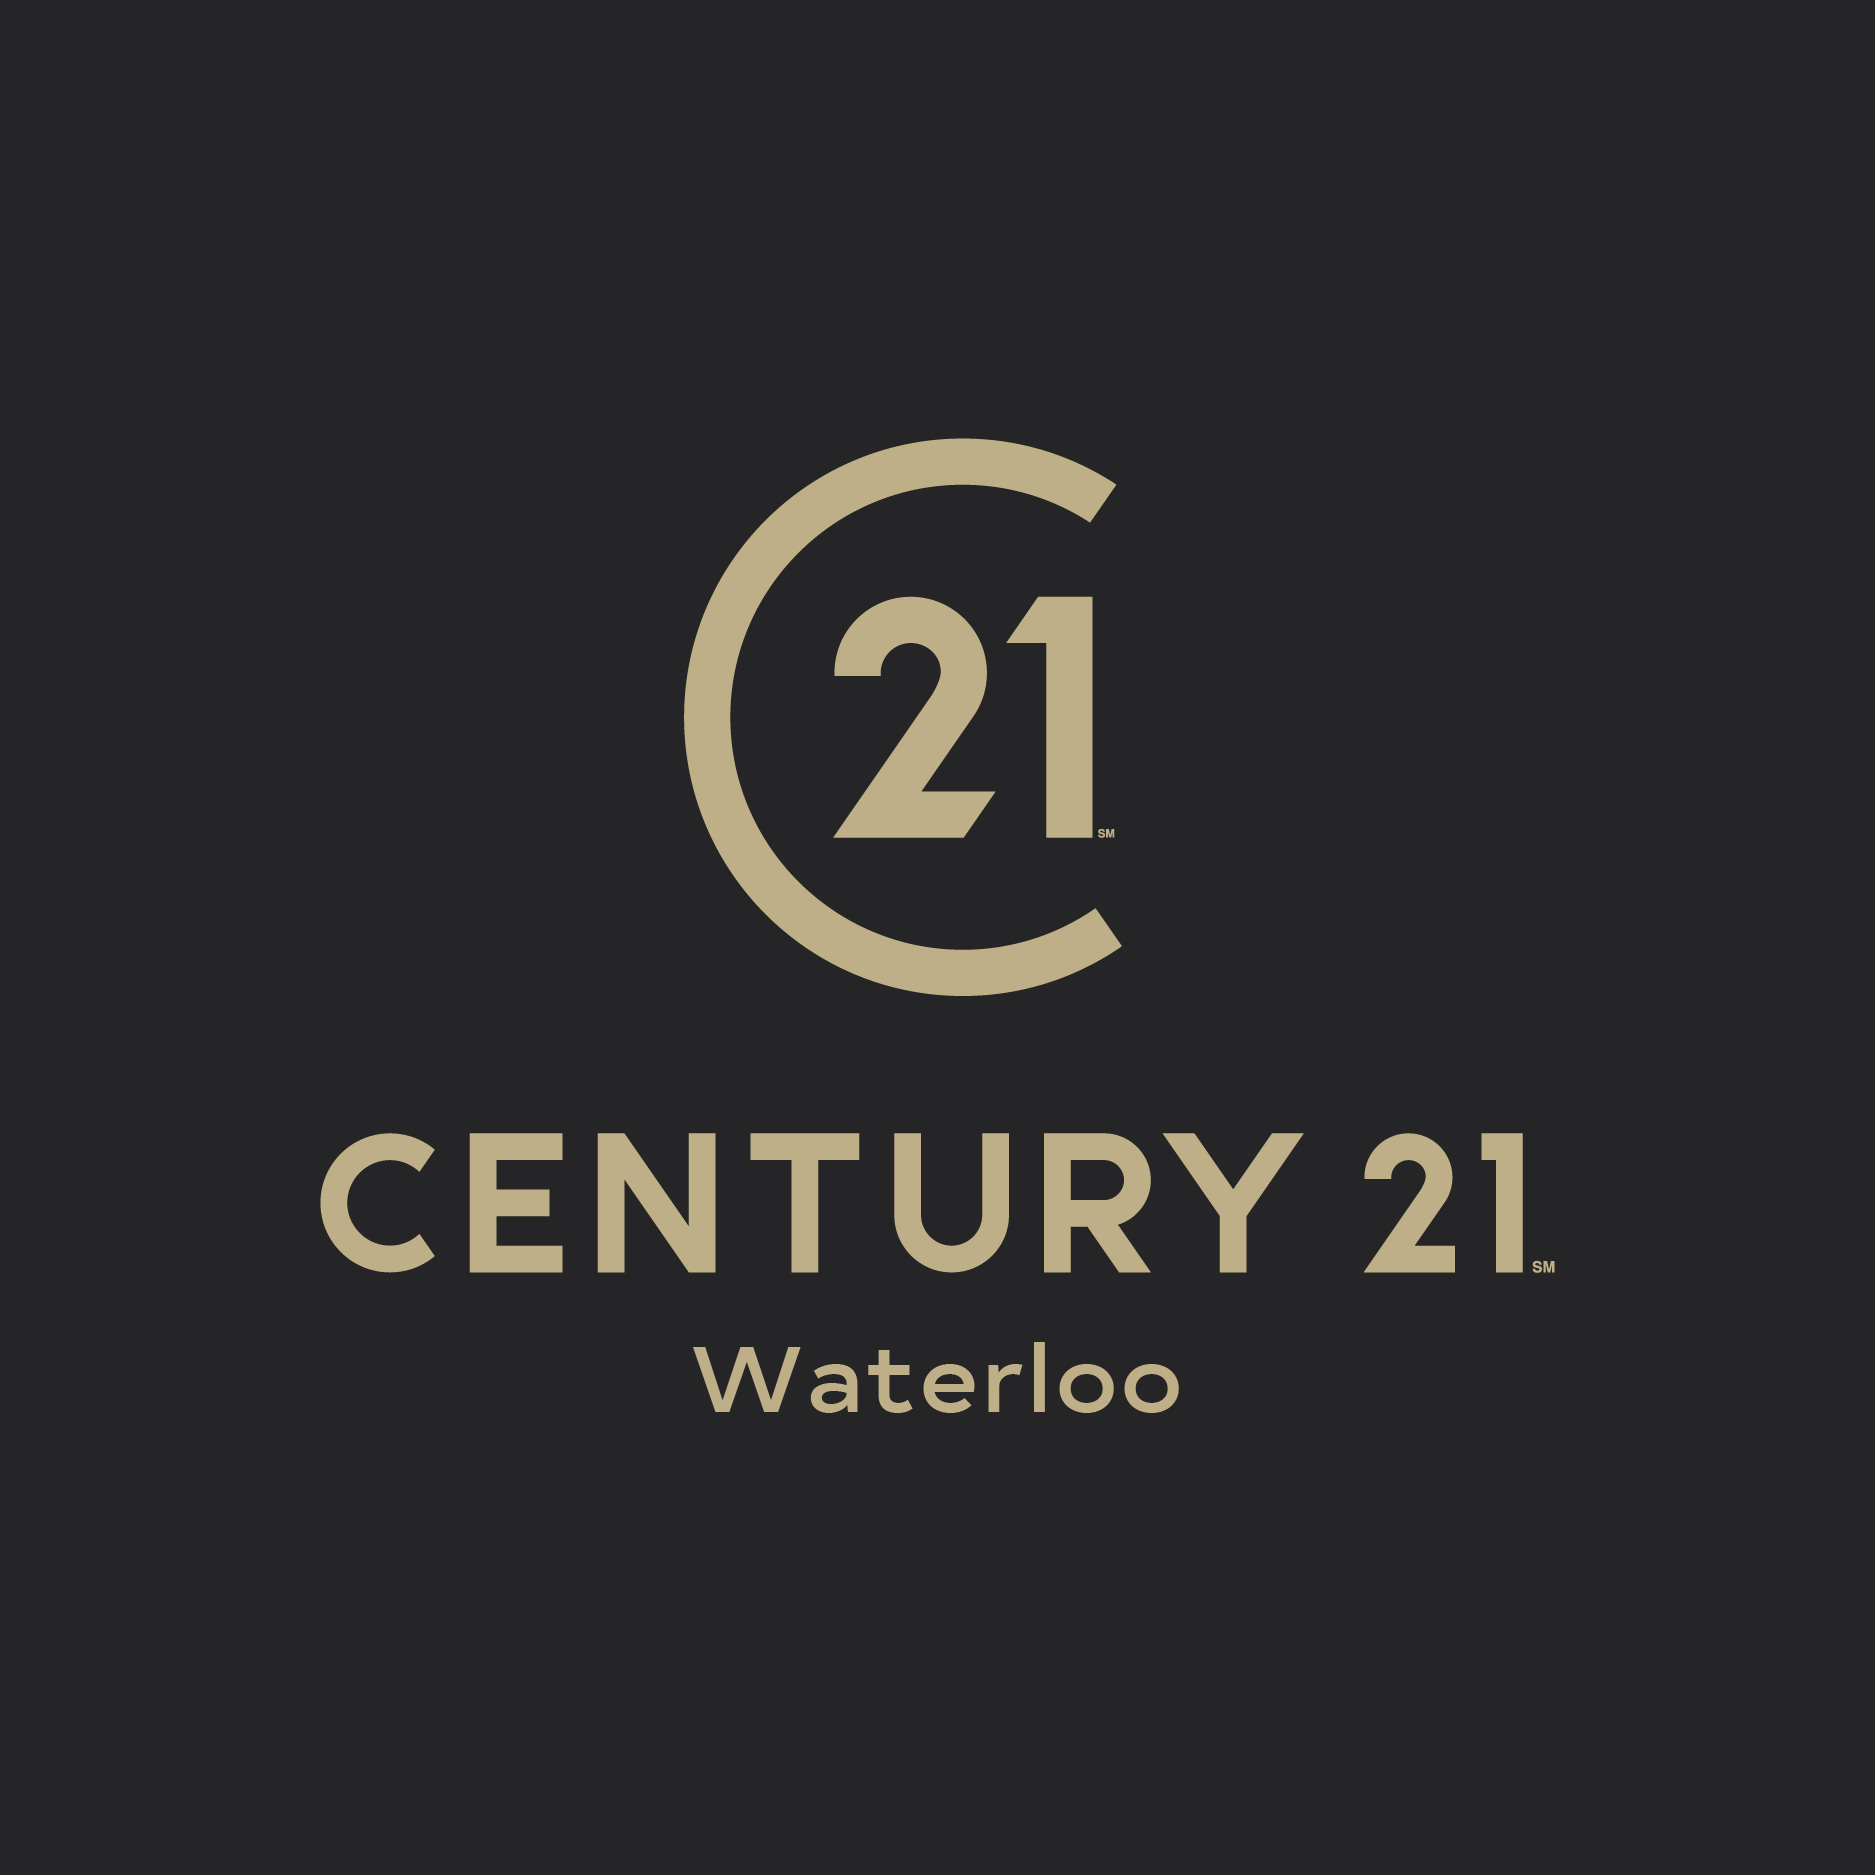 Century 21 - Waterloo